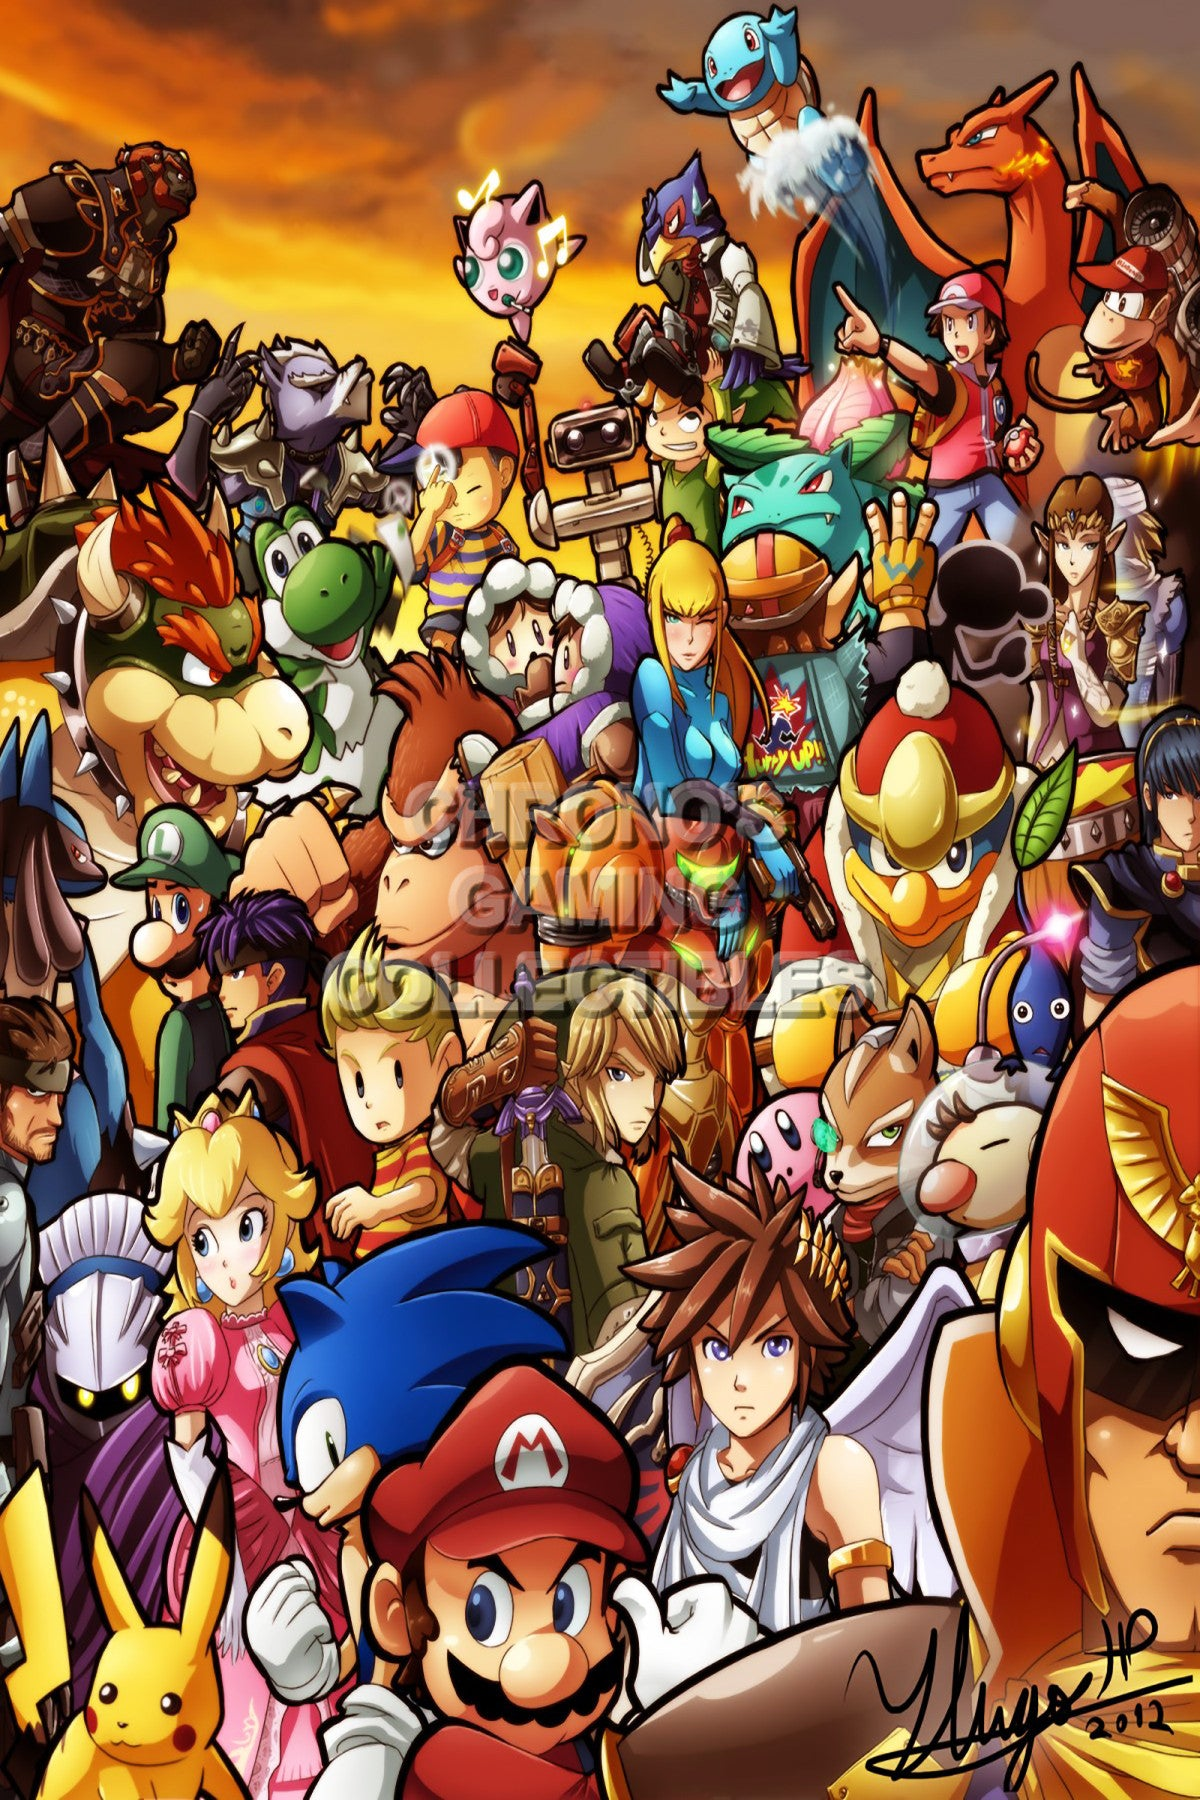 Super Smash Bros. Video Games Poster   CGCPosters